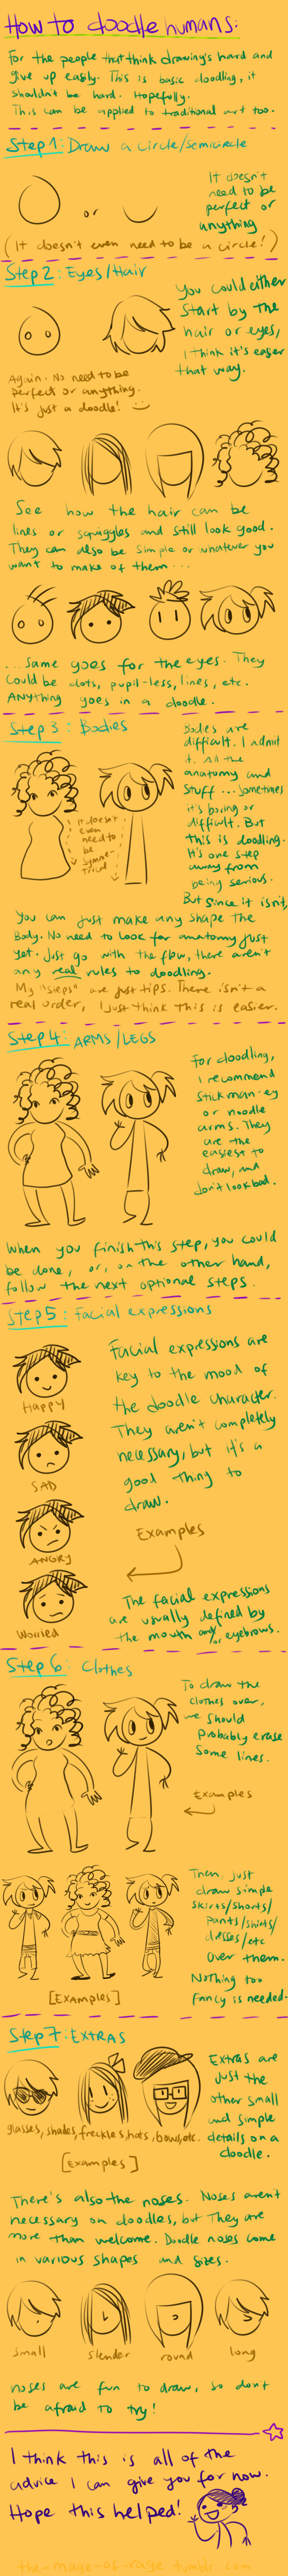 doodling tutorial by Mistakes13